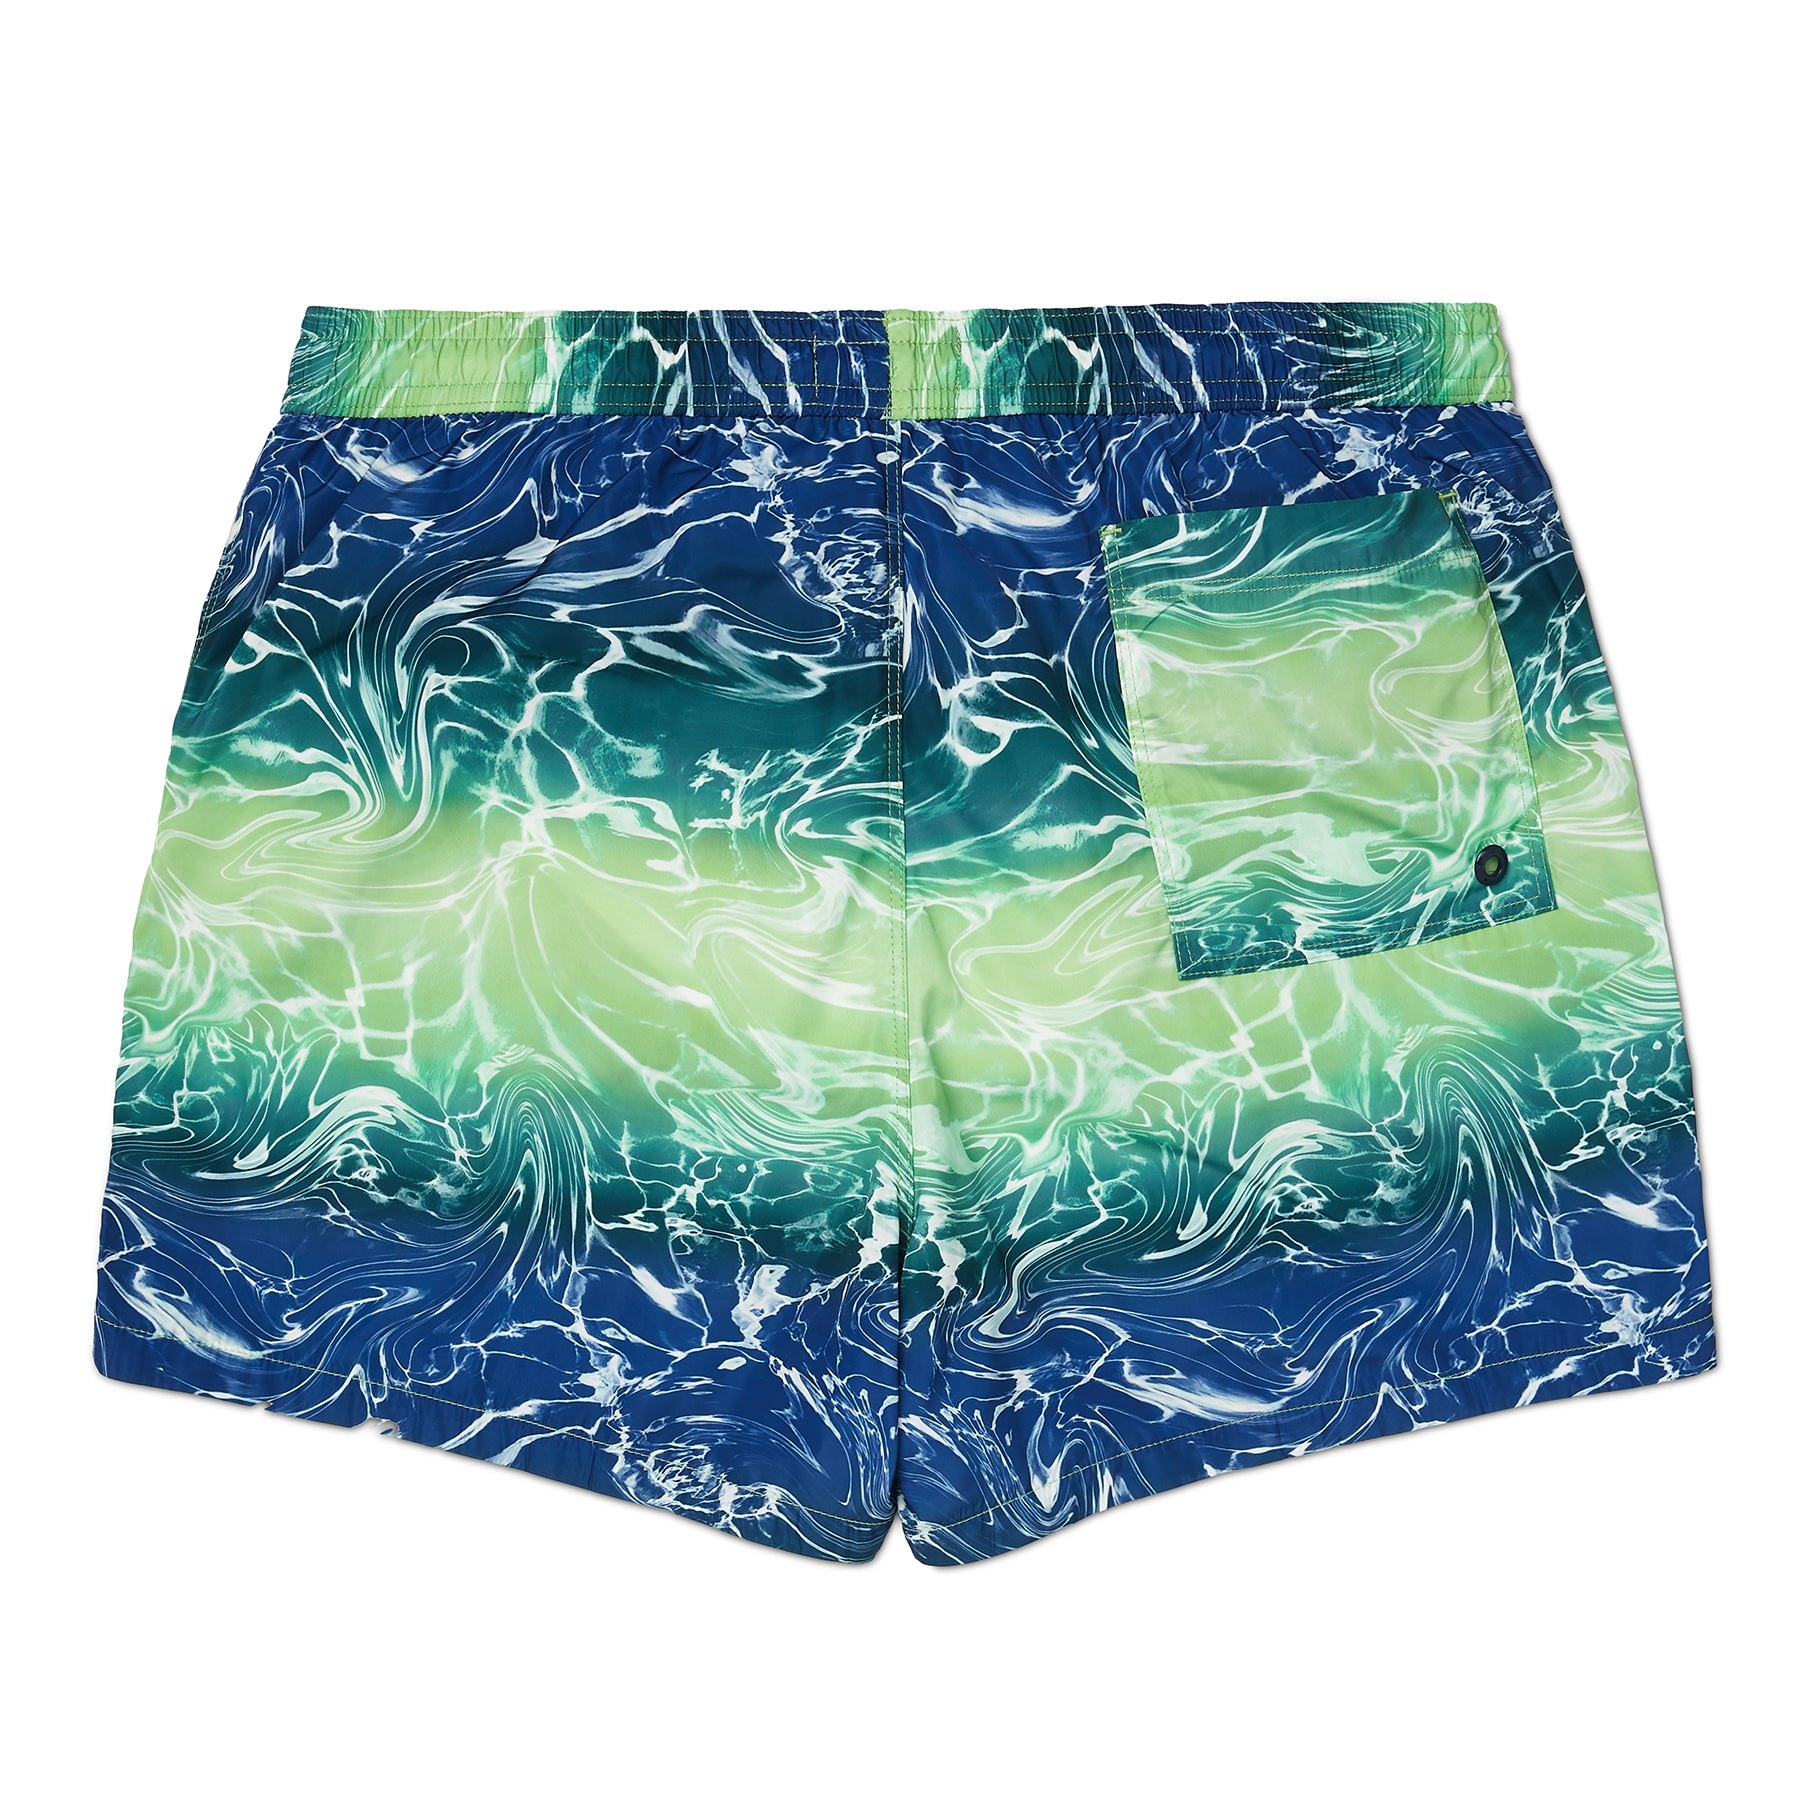 Reflection Wave Print Swim Short, Regular Length